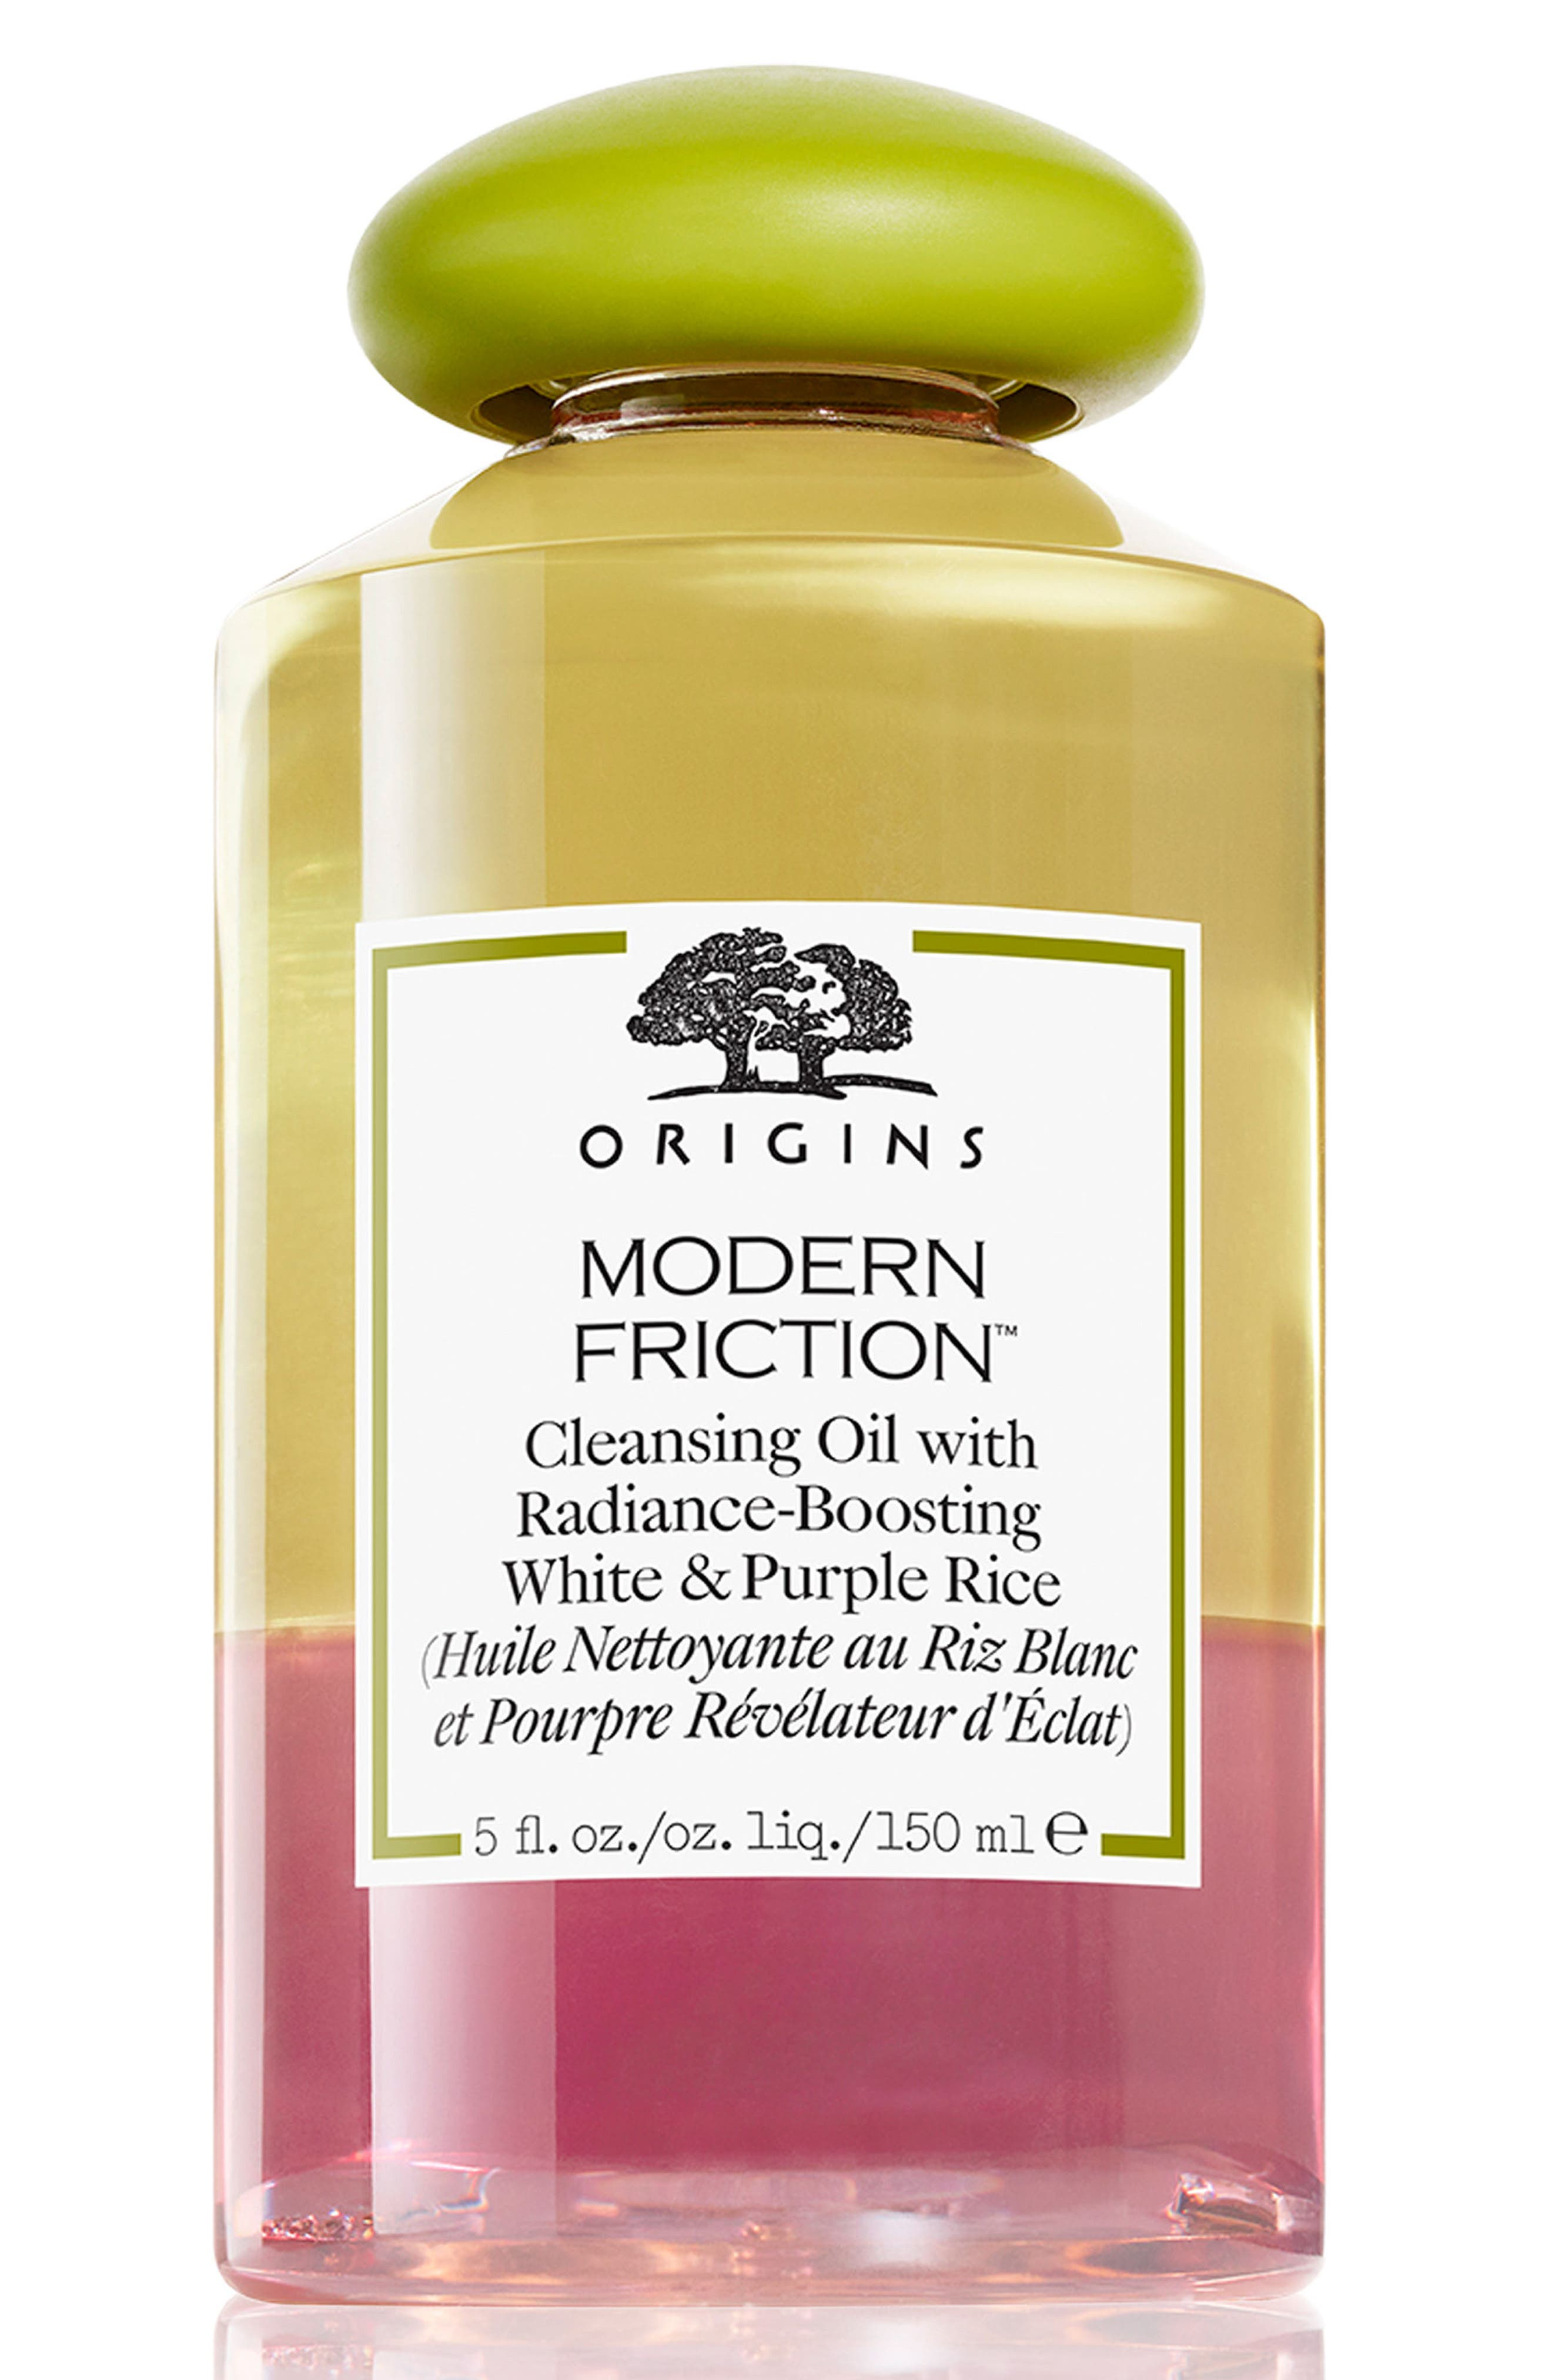 Origins Modern Friction™ Cleansing Oil with Radiance-Boosting White & Purple Rice